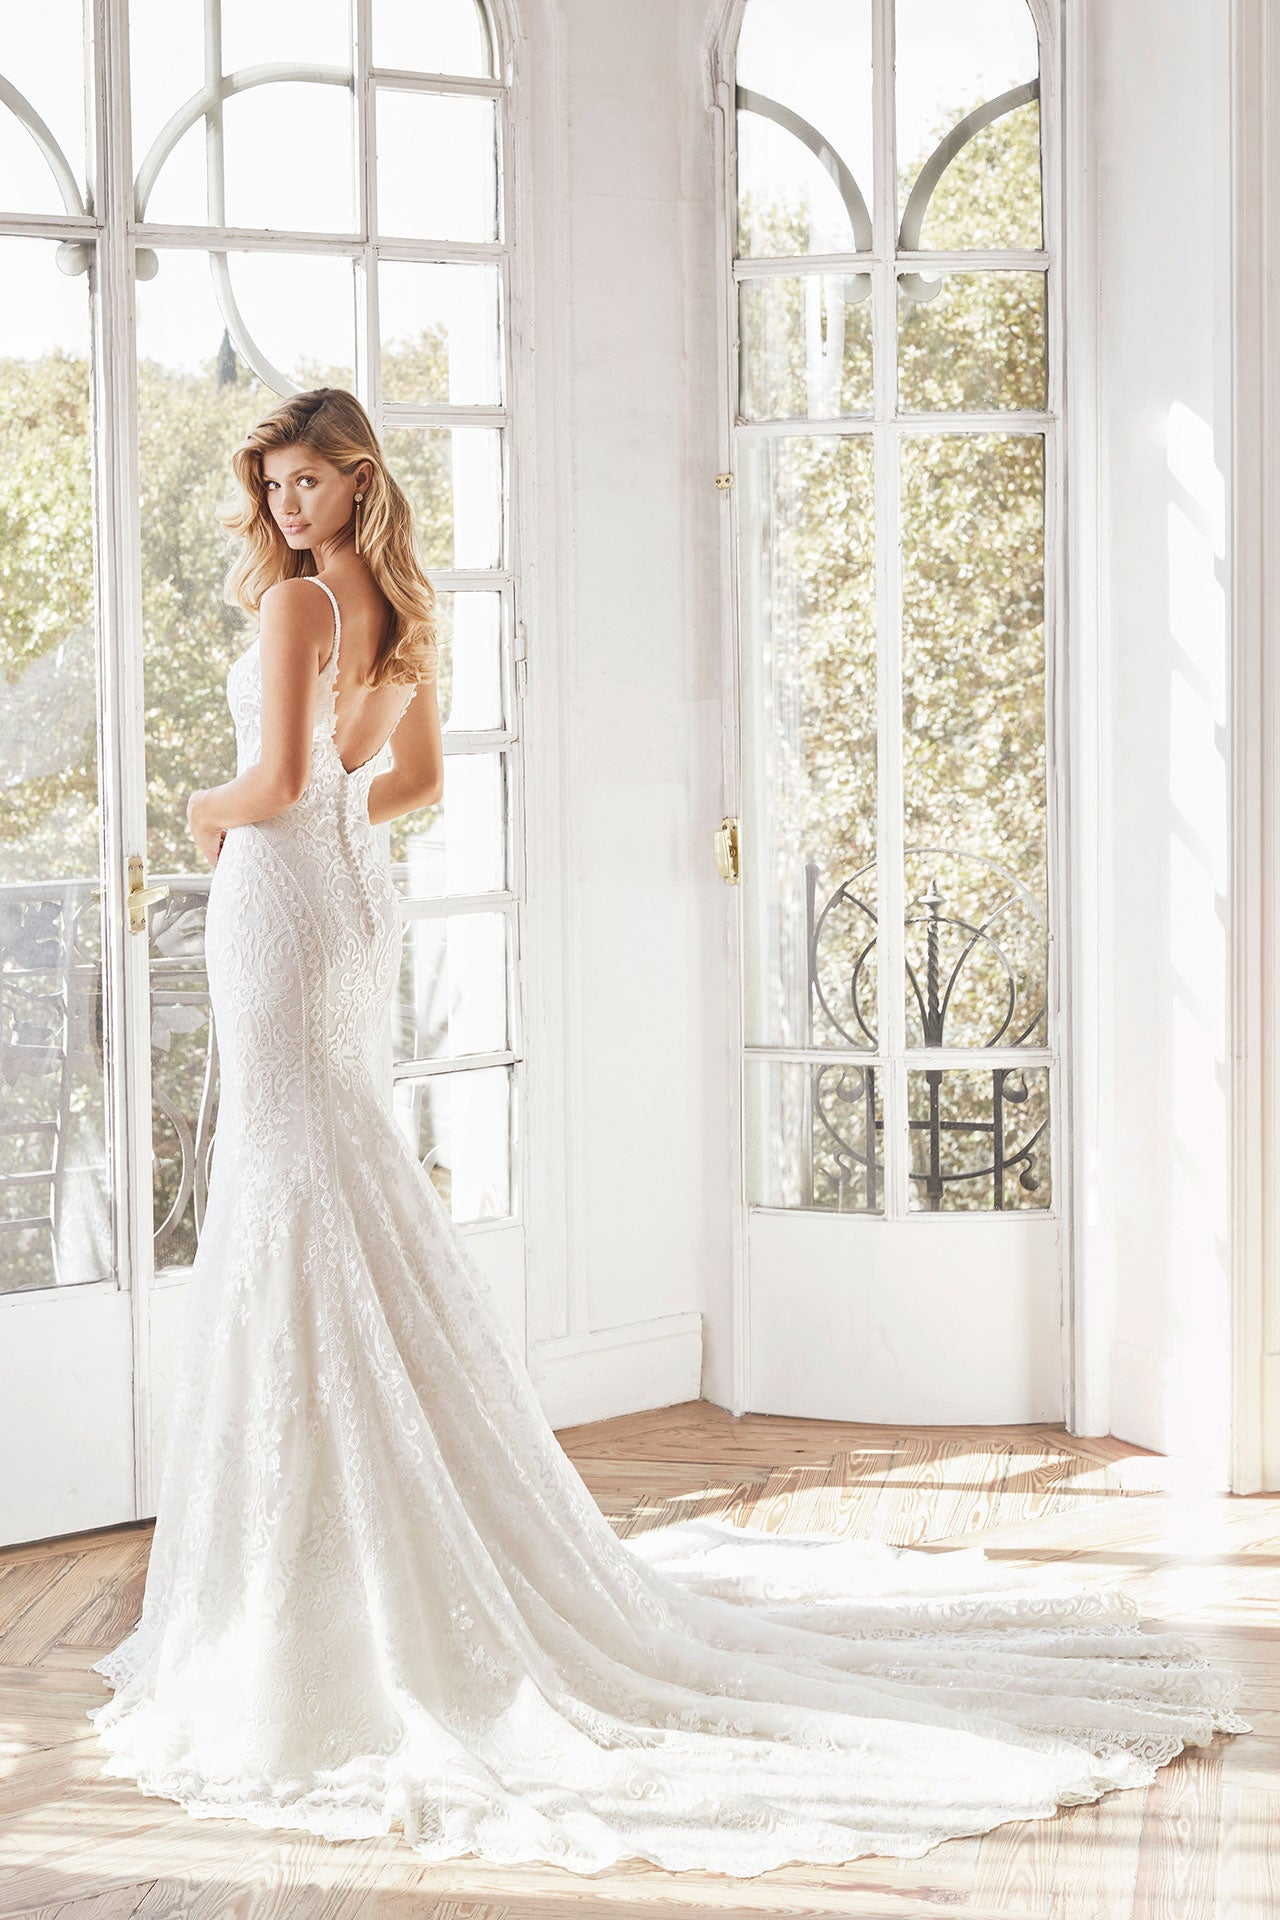 Nezca - Coming Soon, Gown, Aire Barcelona - Eternal Bridal